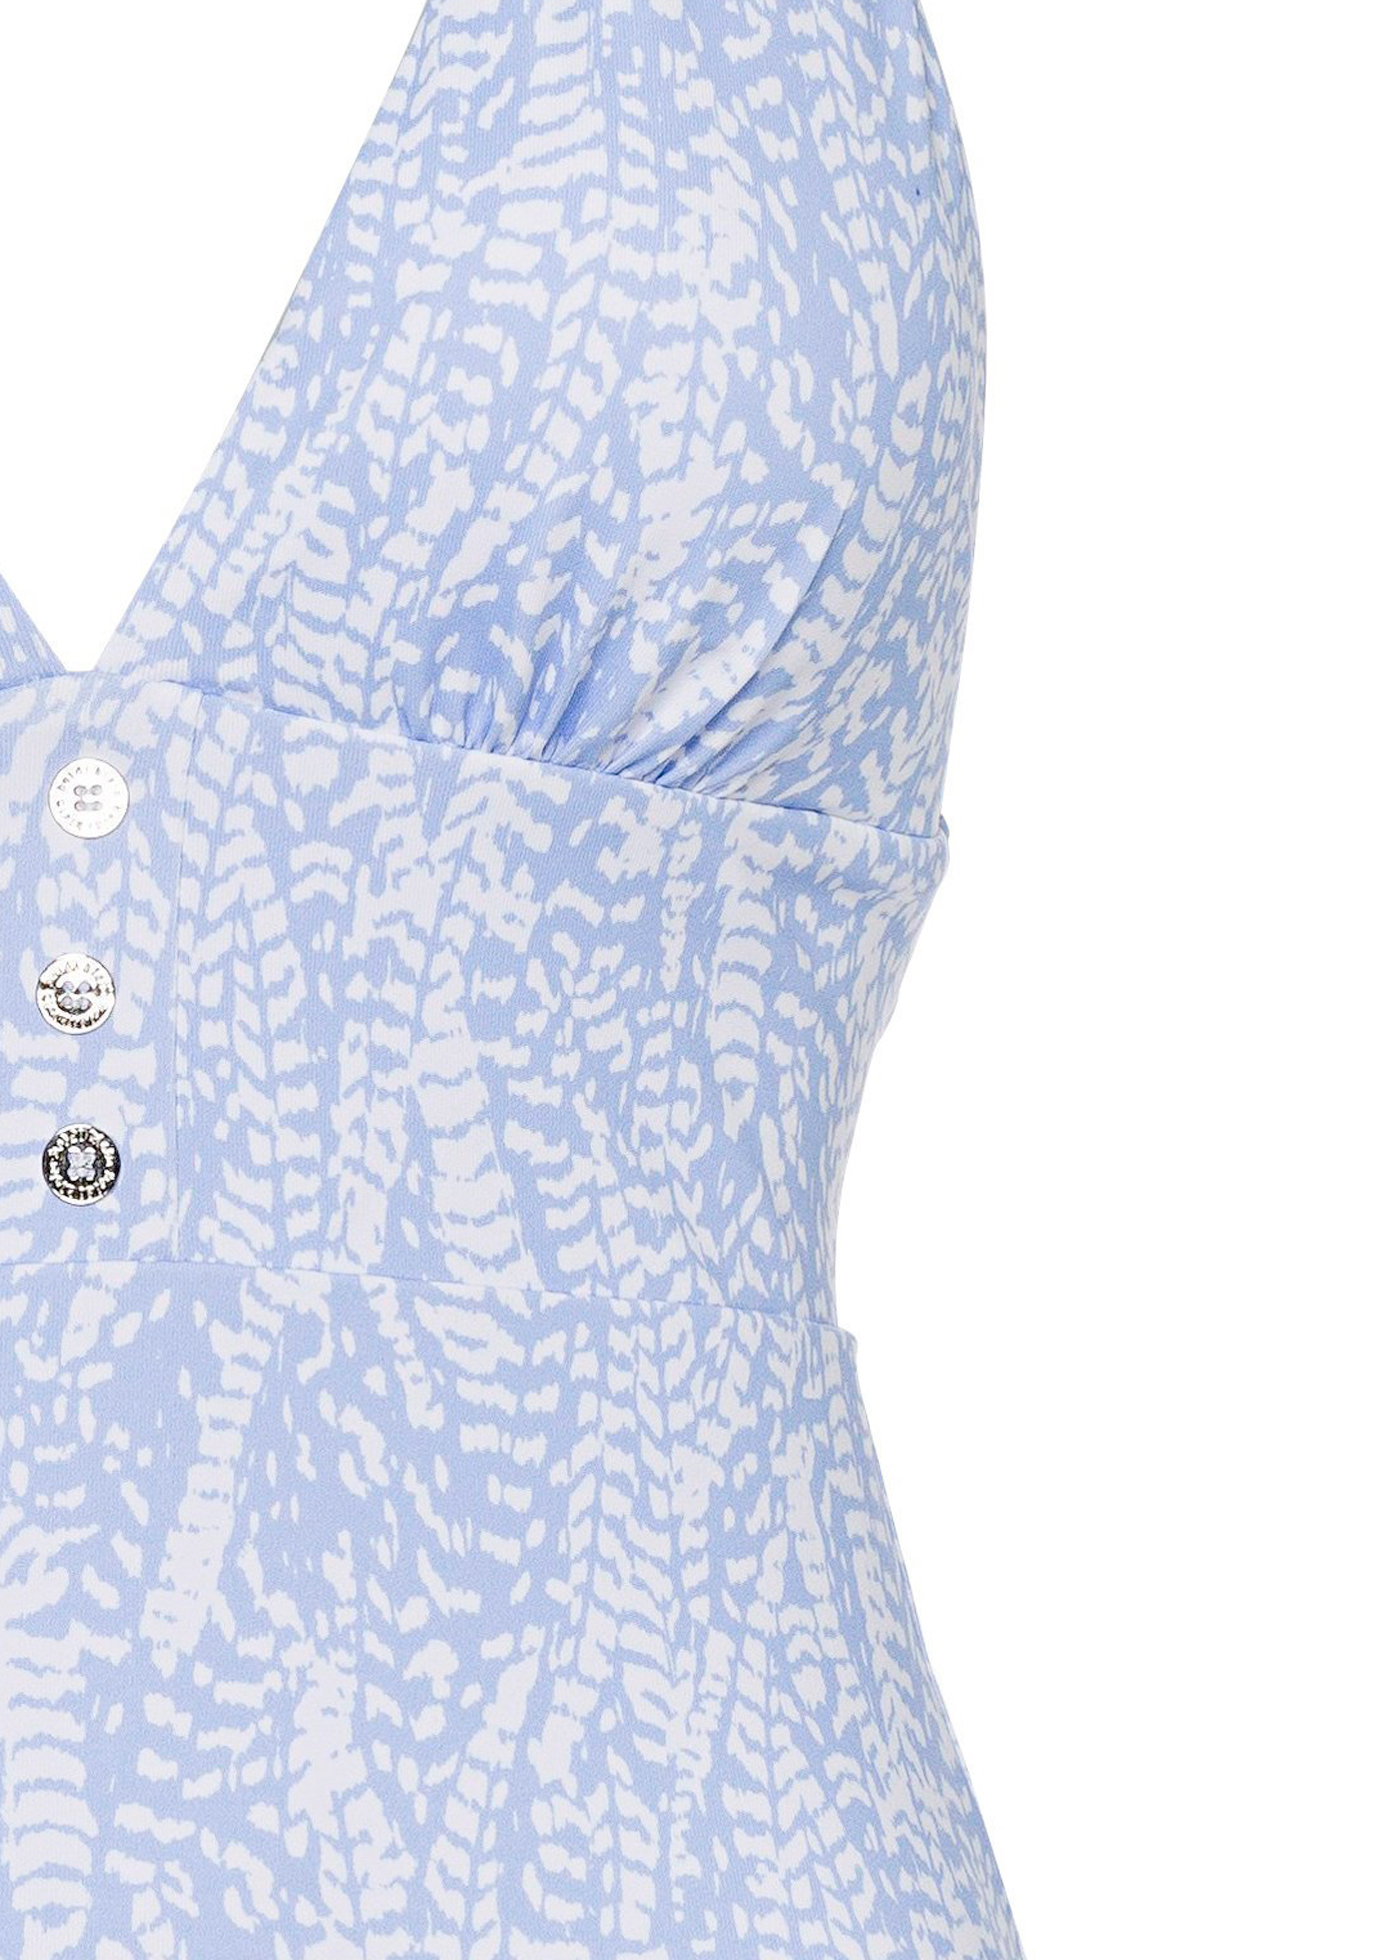 Button Halter One Piece image number 2